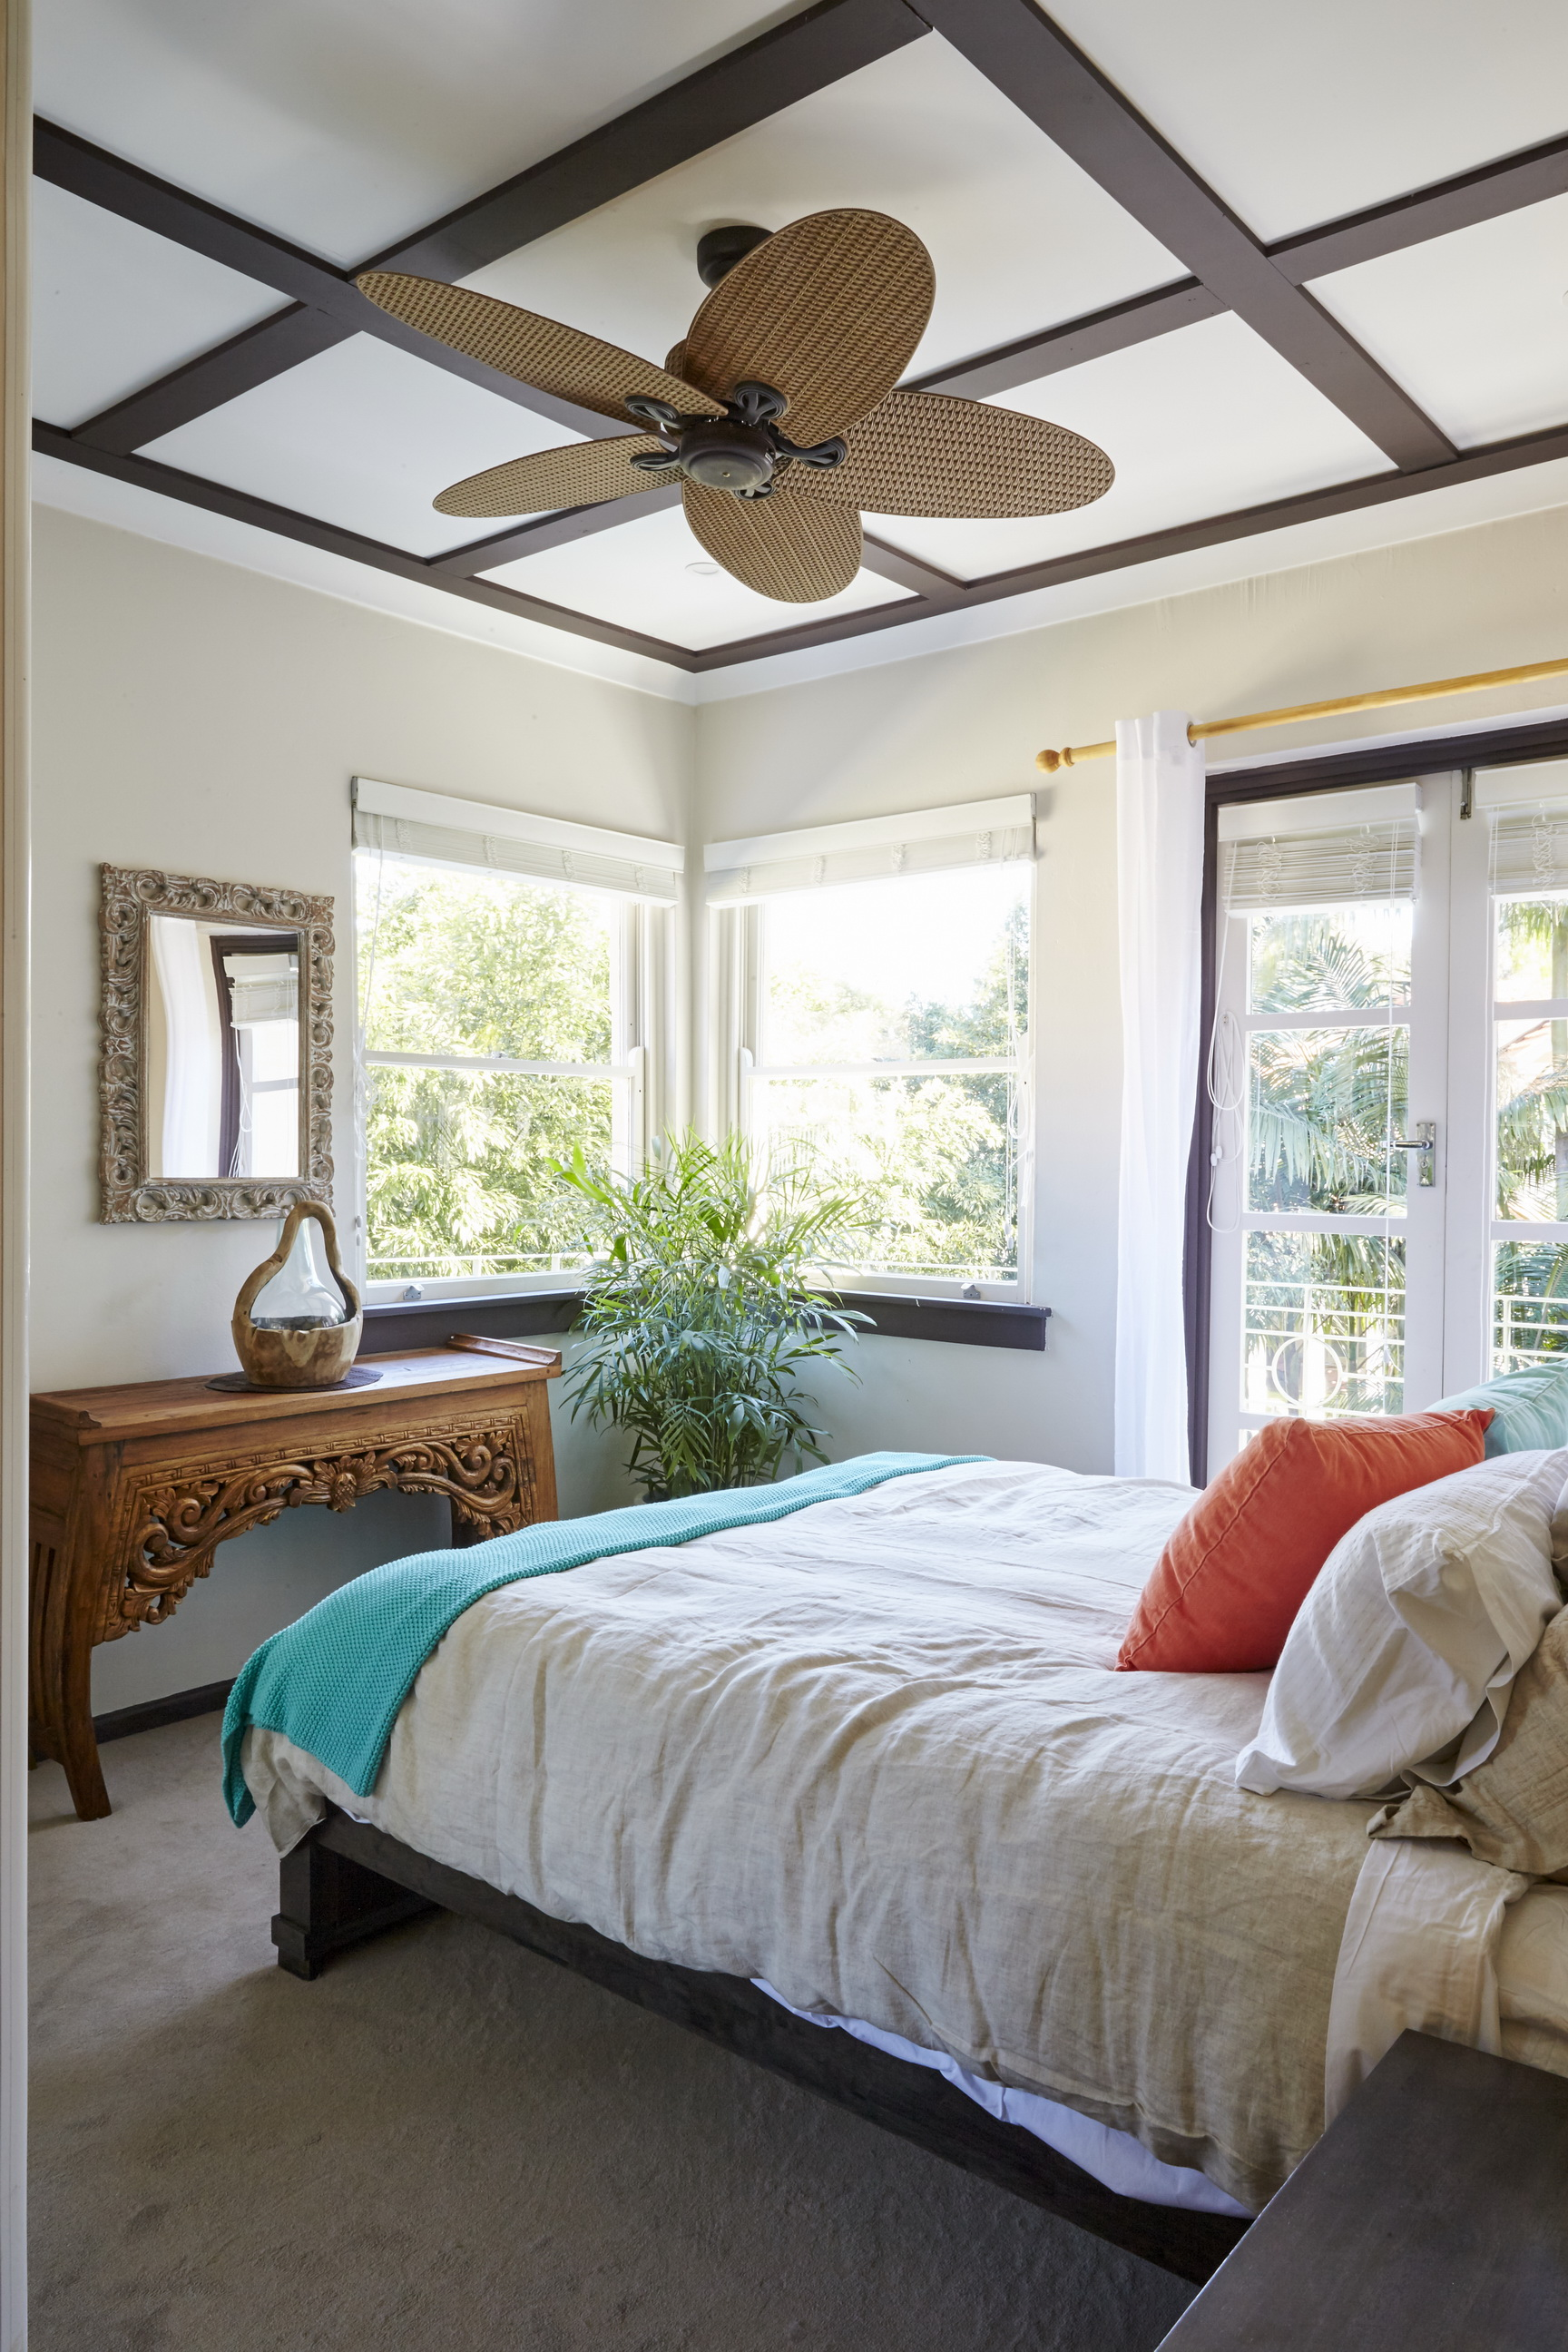 Big Ideas To Get The Most Out Of A Small Space